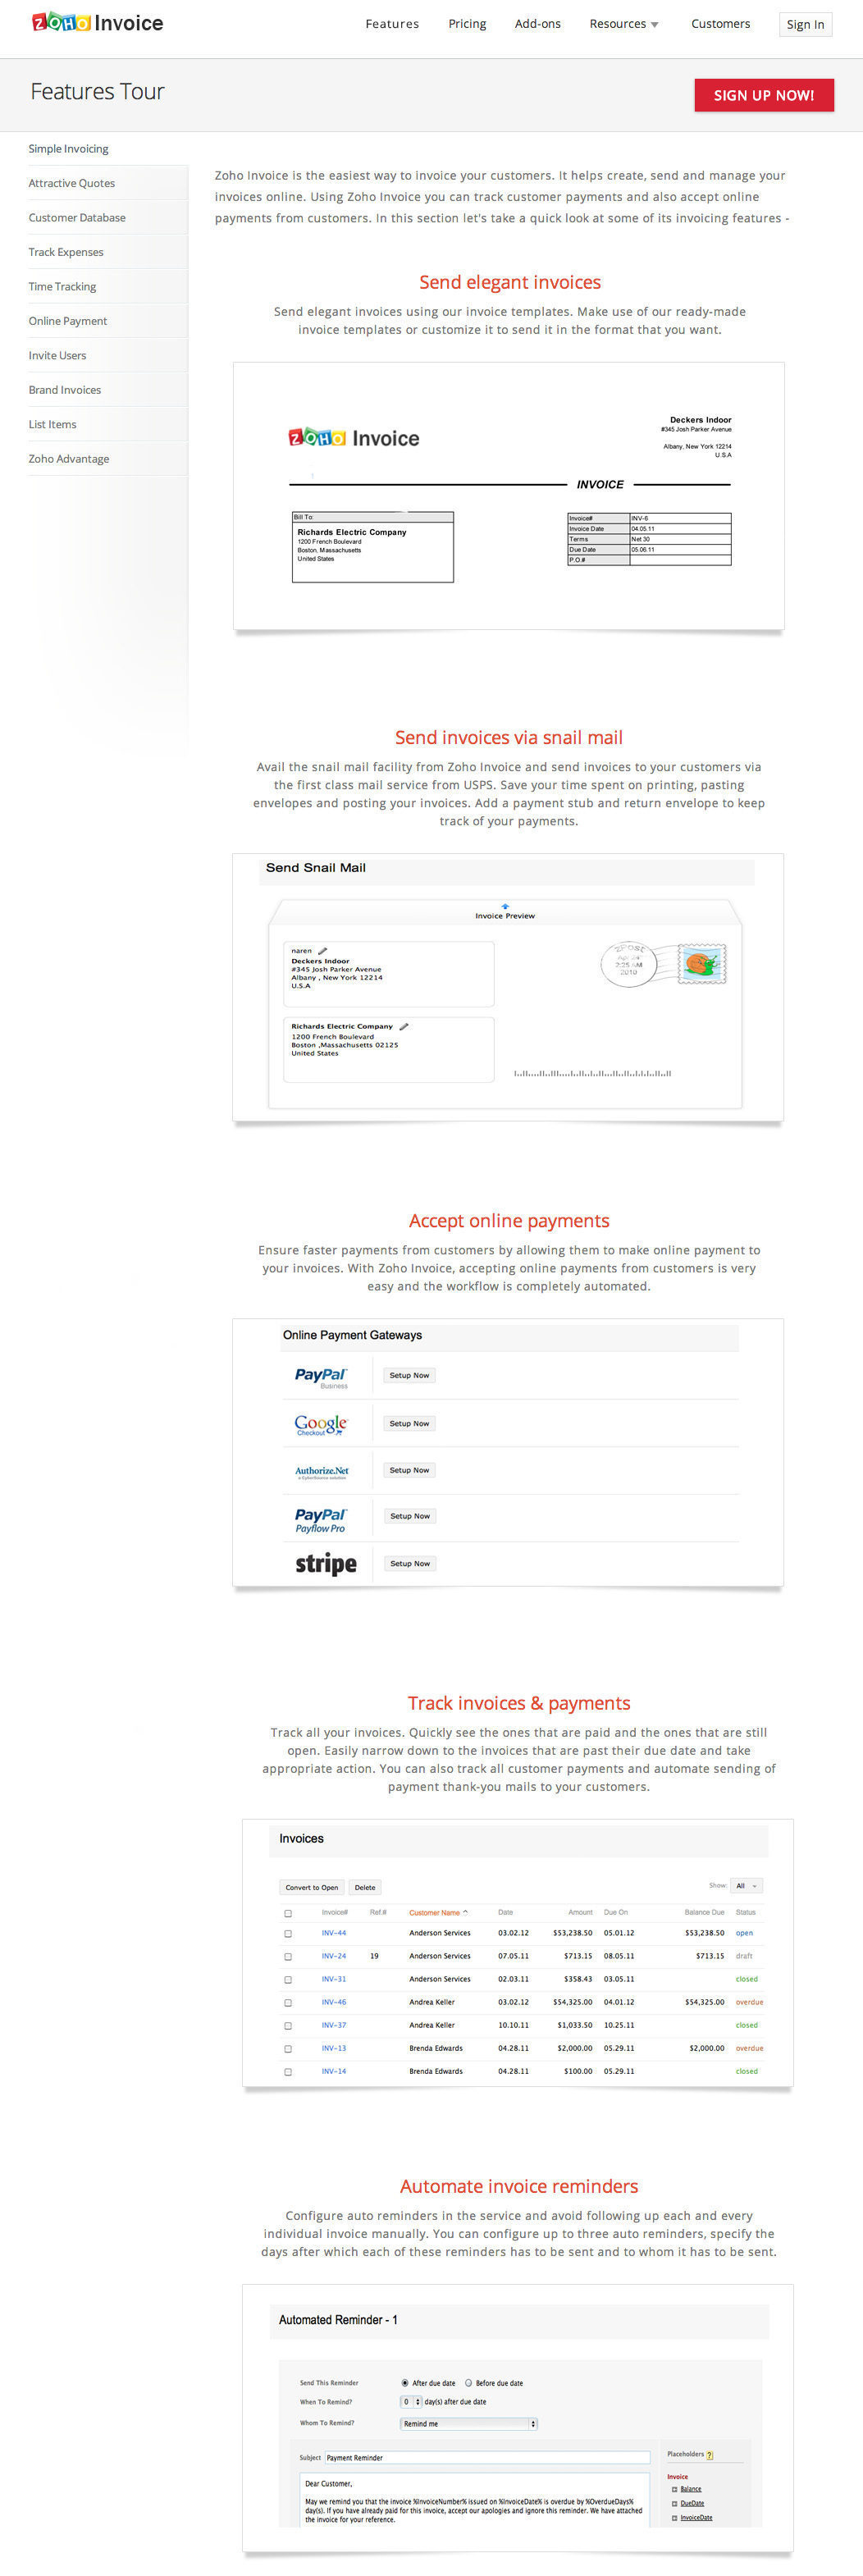 Hius  Gorgeous Top  Complaints And Reviews About Zoho Invoice With Lovely Zoho Invoice Pricing Zoho Invoice  Simple Invoicing  With Beautiful Towing Invoice Template Also Free Editable Invoice Template In Addition Sample Invoices Pdf And Quickbook Invoices As Well As Invoice Google Additionally Designer Invoice Template From Consumeraffairscom With Hius  Lovely Top  Complaints And Reviews About Zoho Invoice With Beautiful Zoho Invoice Pricing Zoho Invoice  Simple Invoicing  And Gorgeous Towing Invoice Template Also Free Editable Invoice Template In Addition Sample Invoices Pdf From Consumeraffairscom